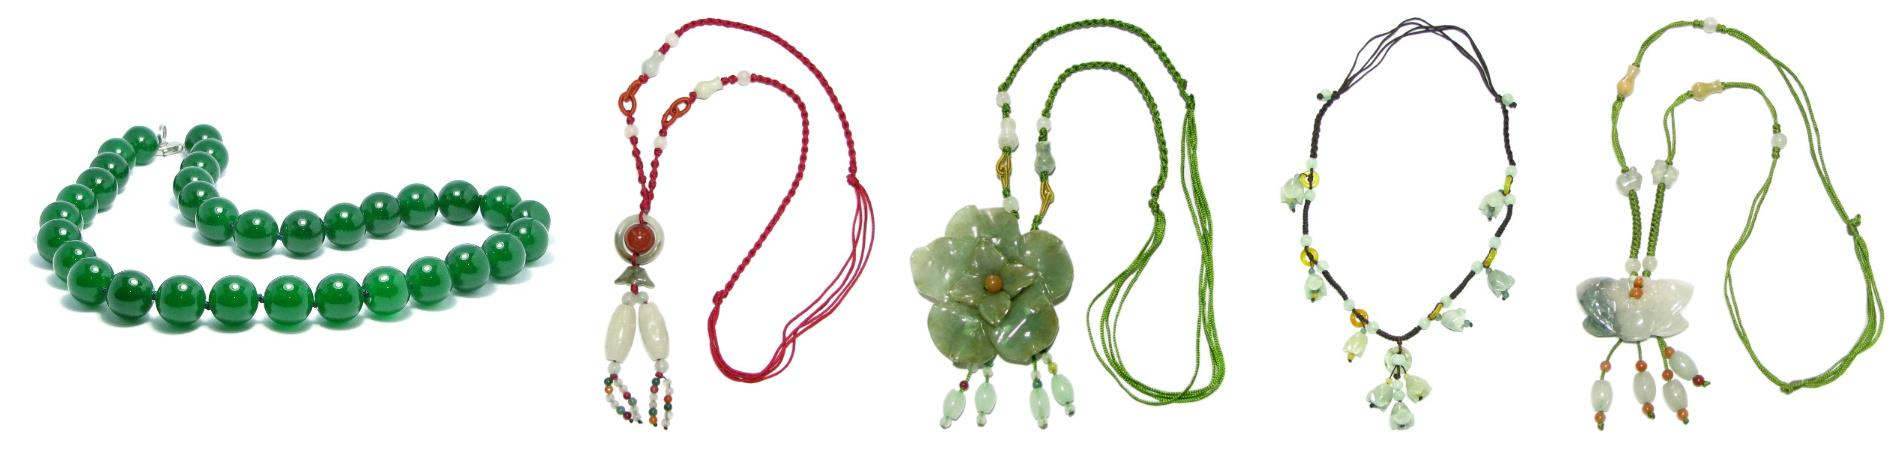 Buy Chinese Jade Necklaces Online